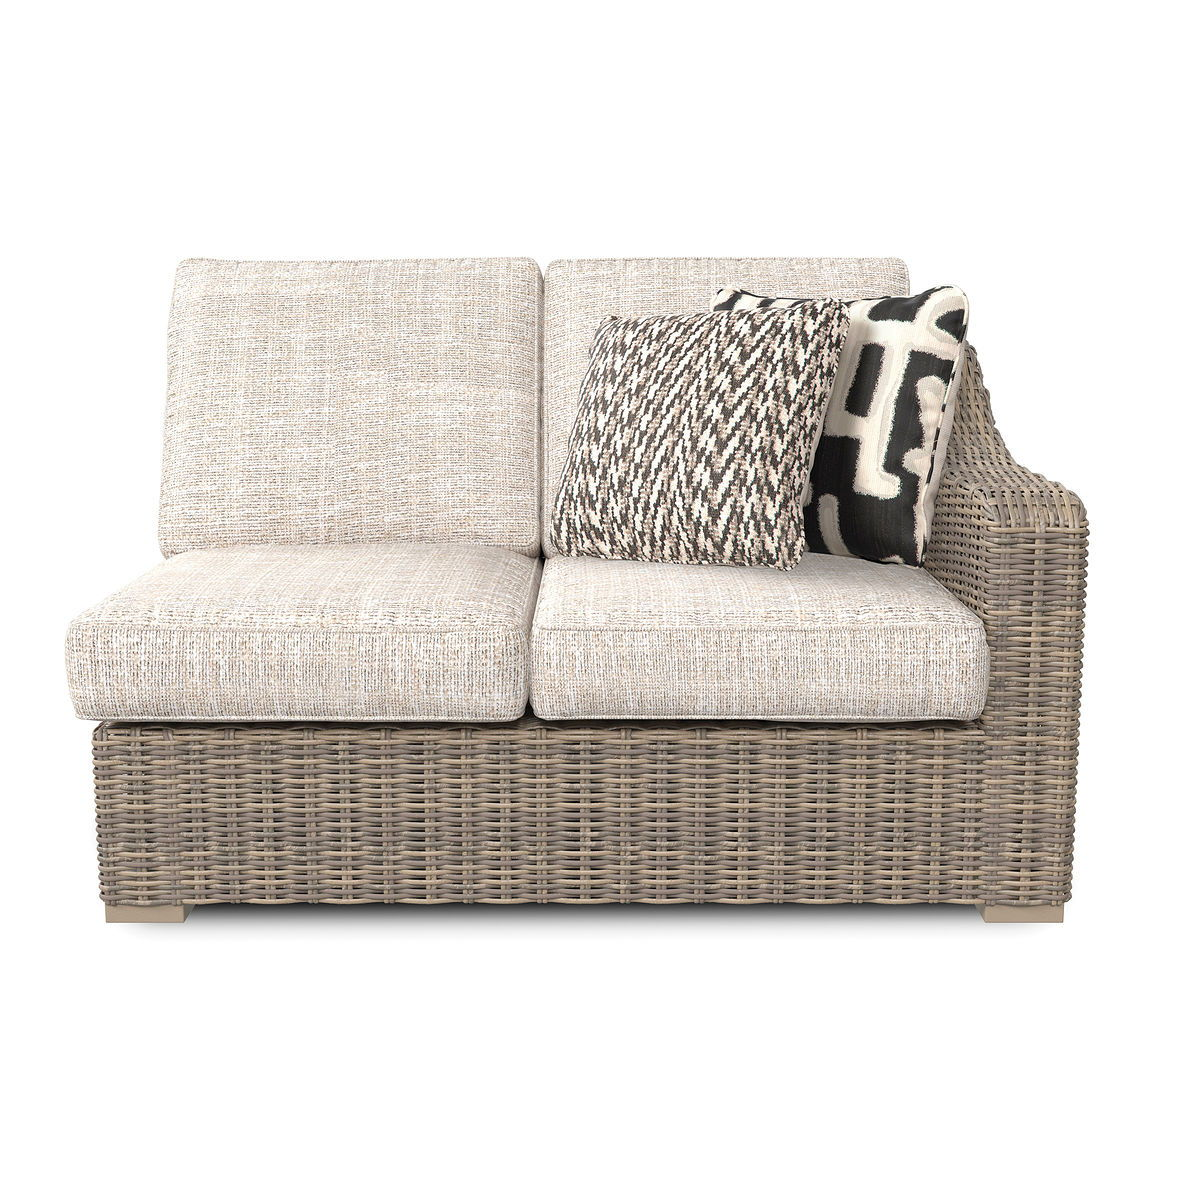 Beachcroft Left-Arm Facing Loveseat/Right-Arm Facing Loveseat | Showhome Furniture